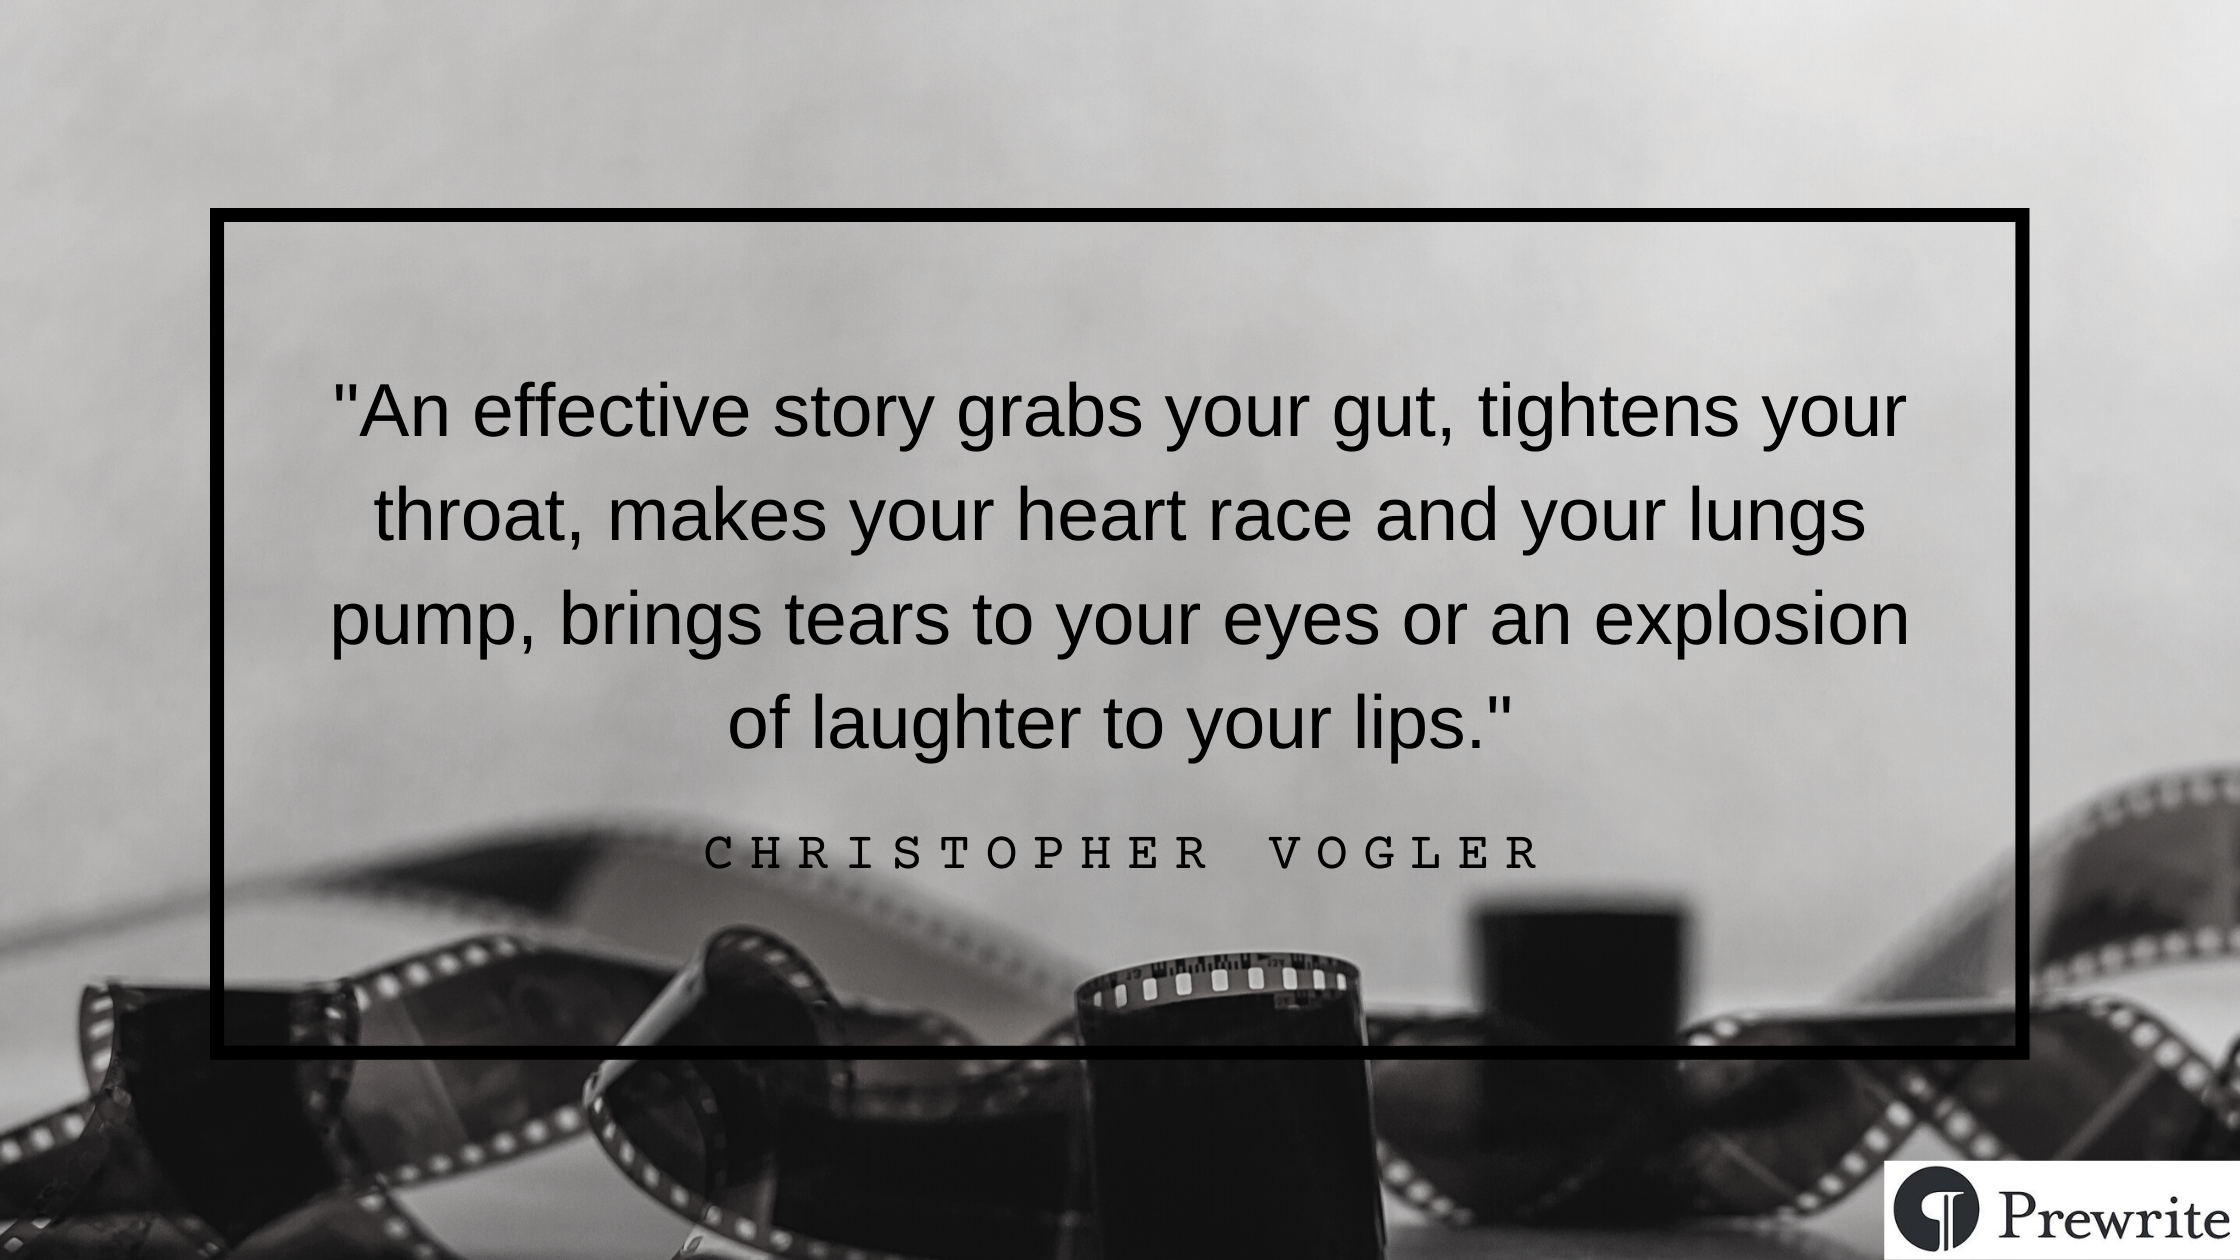 Christopher Vogler quote: An effective story grabs your gut, tightens your throat, makes your heart race and your lungs pump, brings tears to your eyes or an explosion of laughter to your lips.